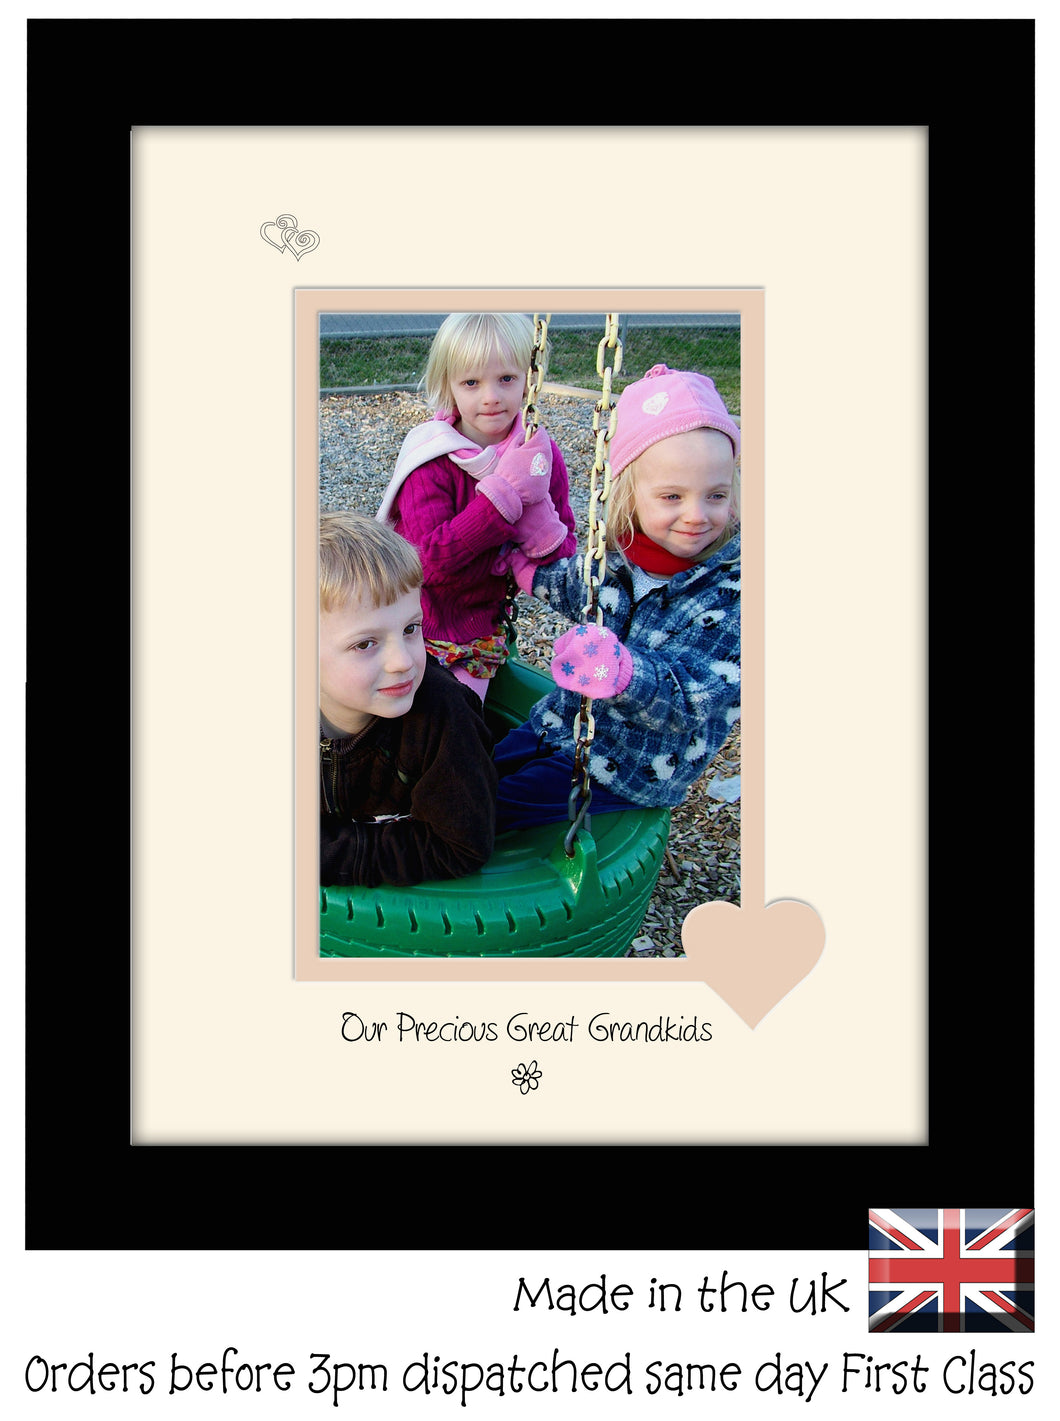 Great Grandkids Photo Frame - Our precious Great Grandkids Portrait photo frame 6